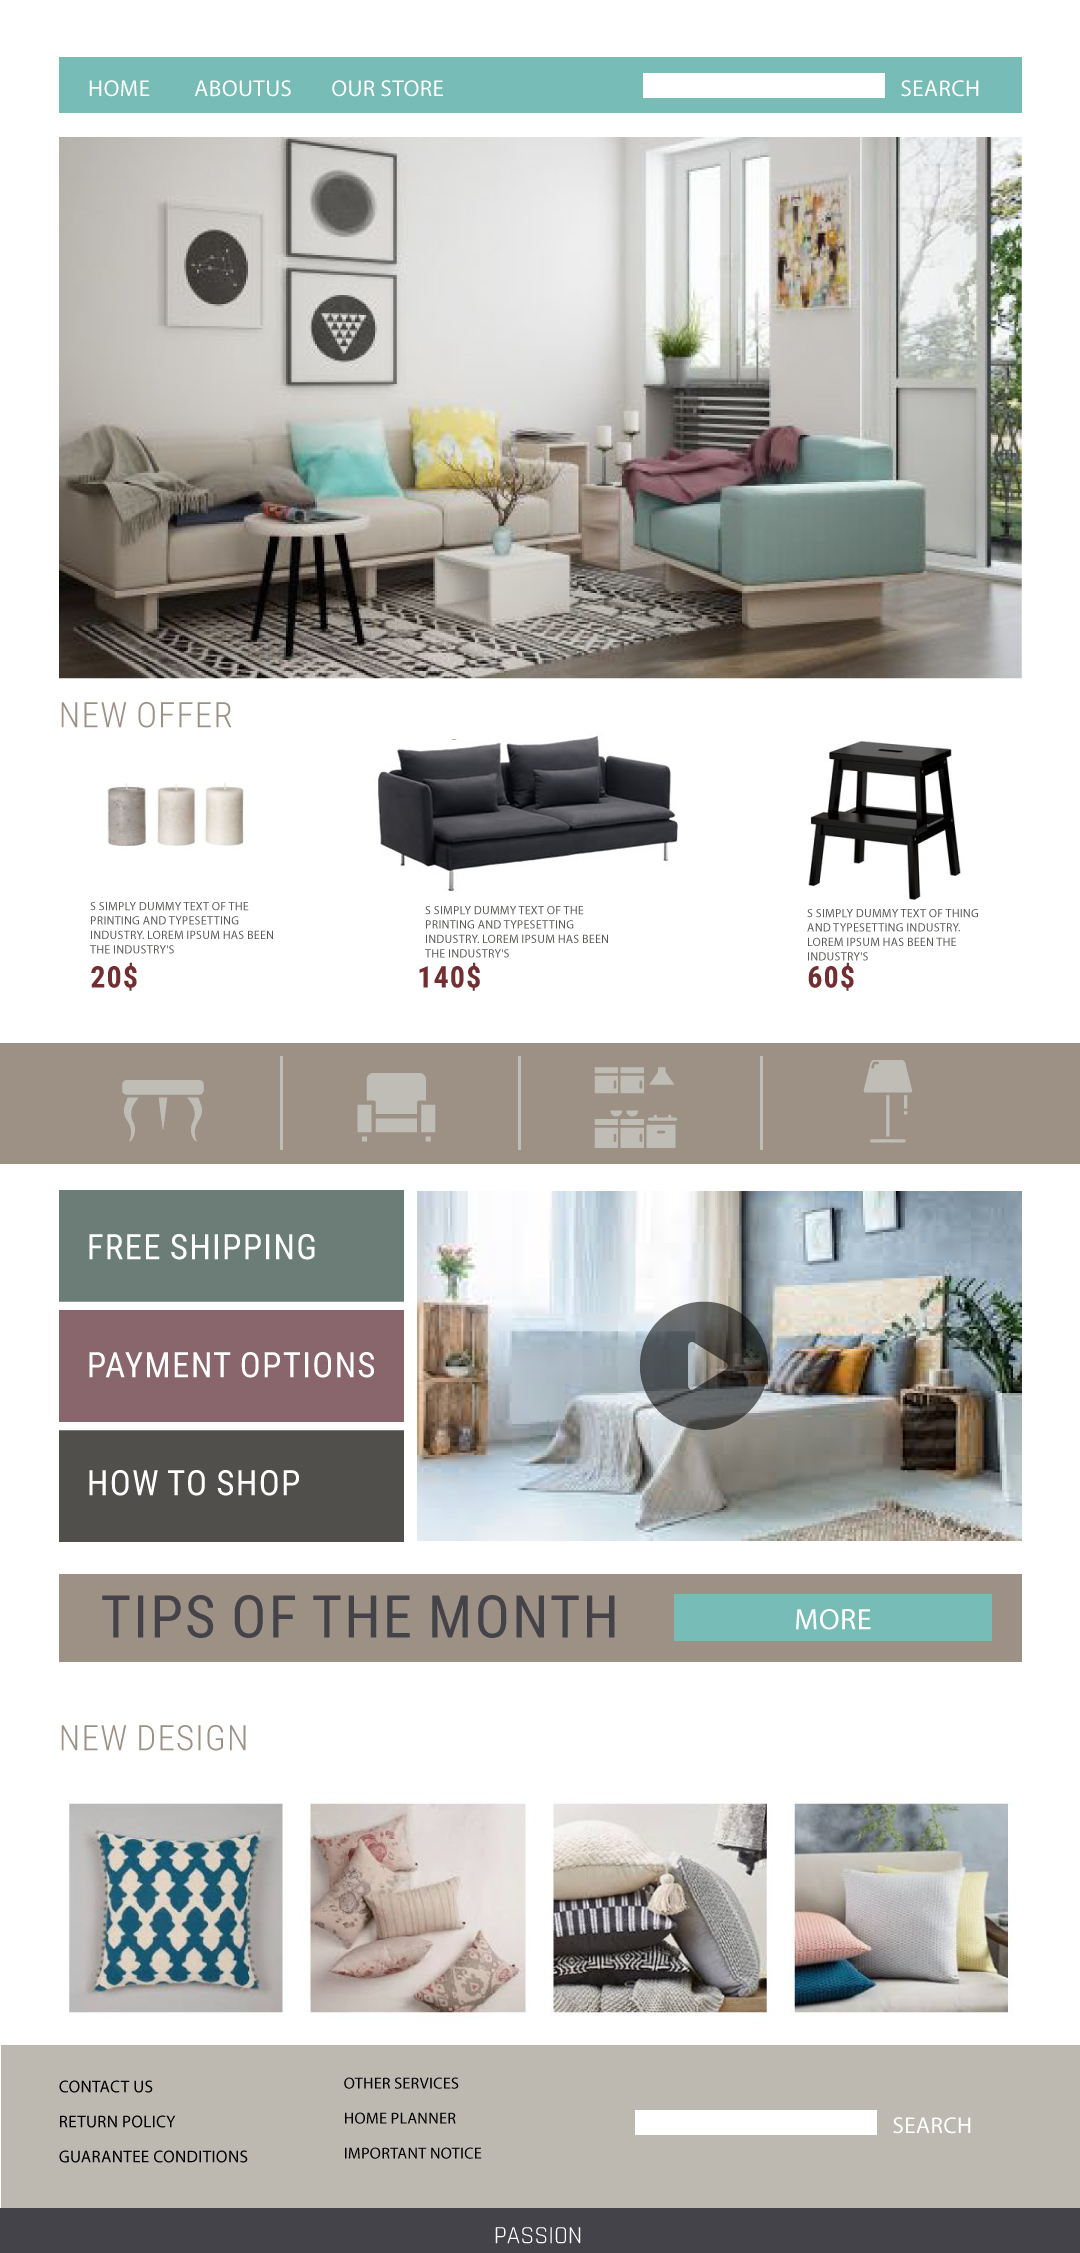 Design a website template for a furniture store